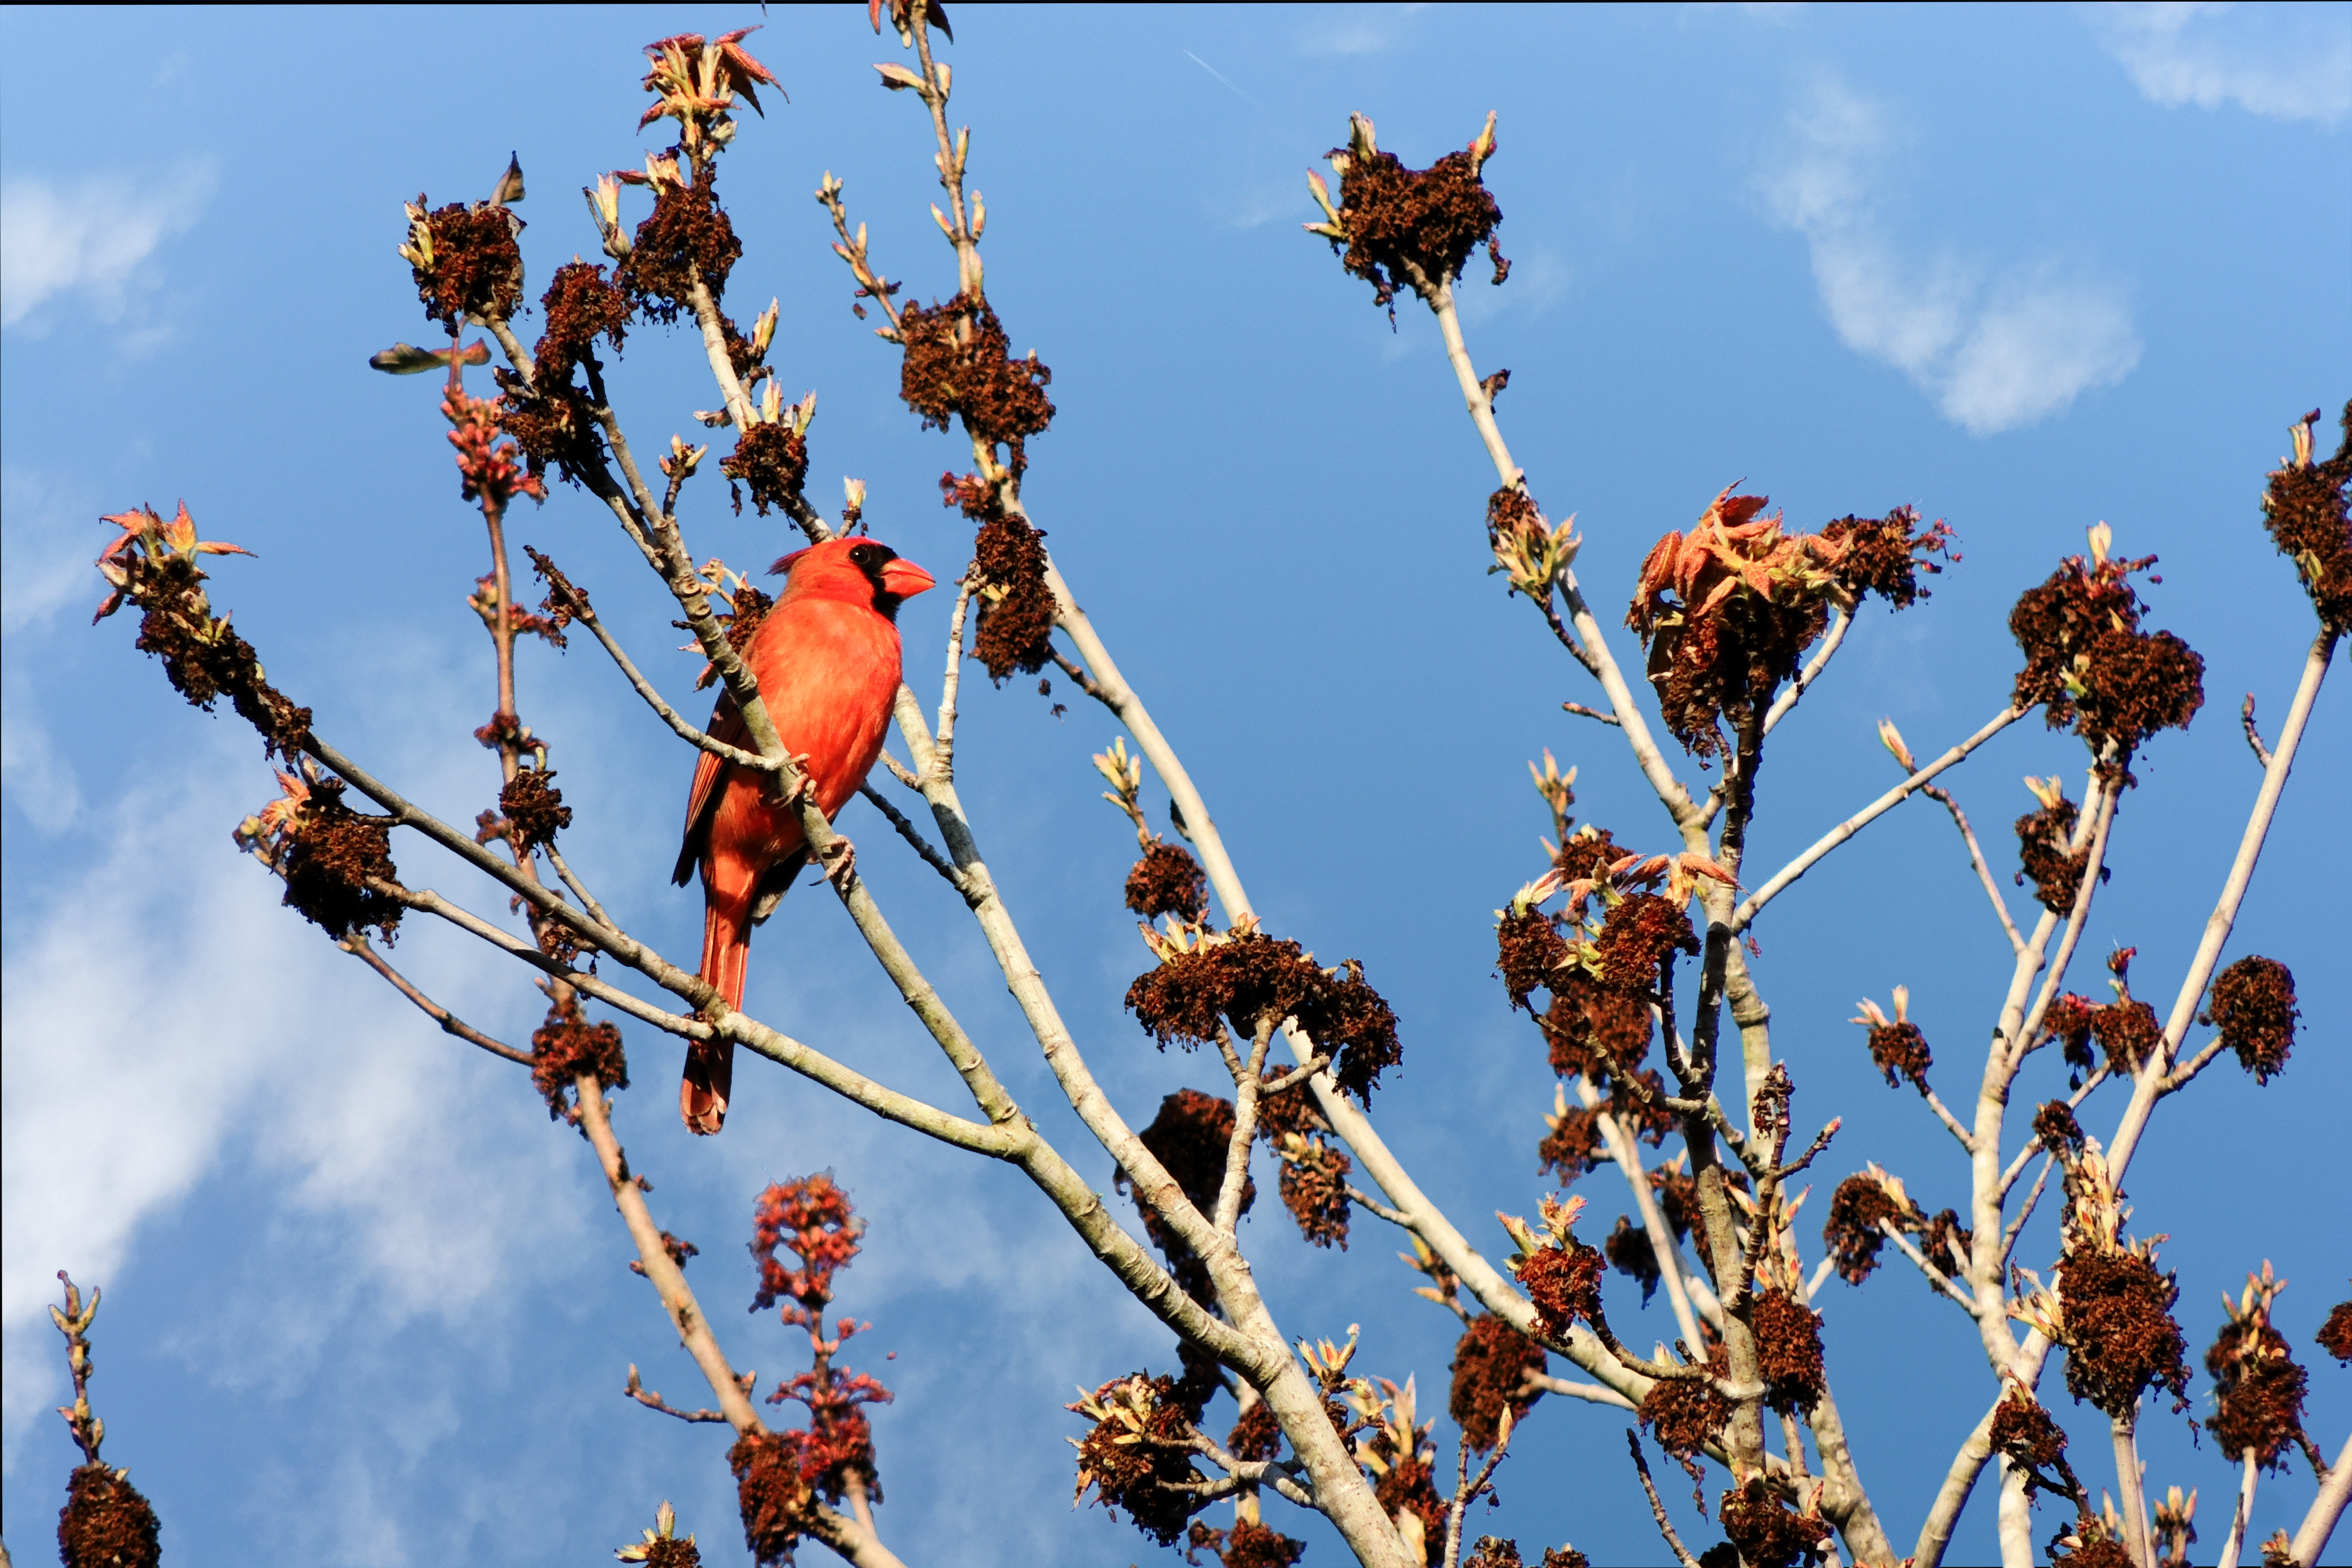 Red Cardinal against a blue sky - 4006